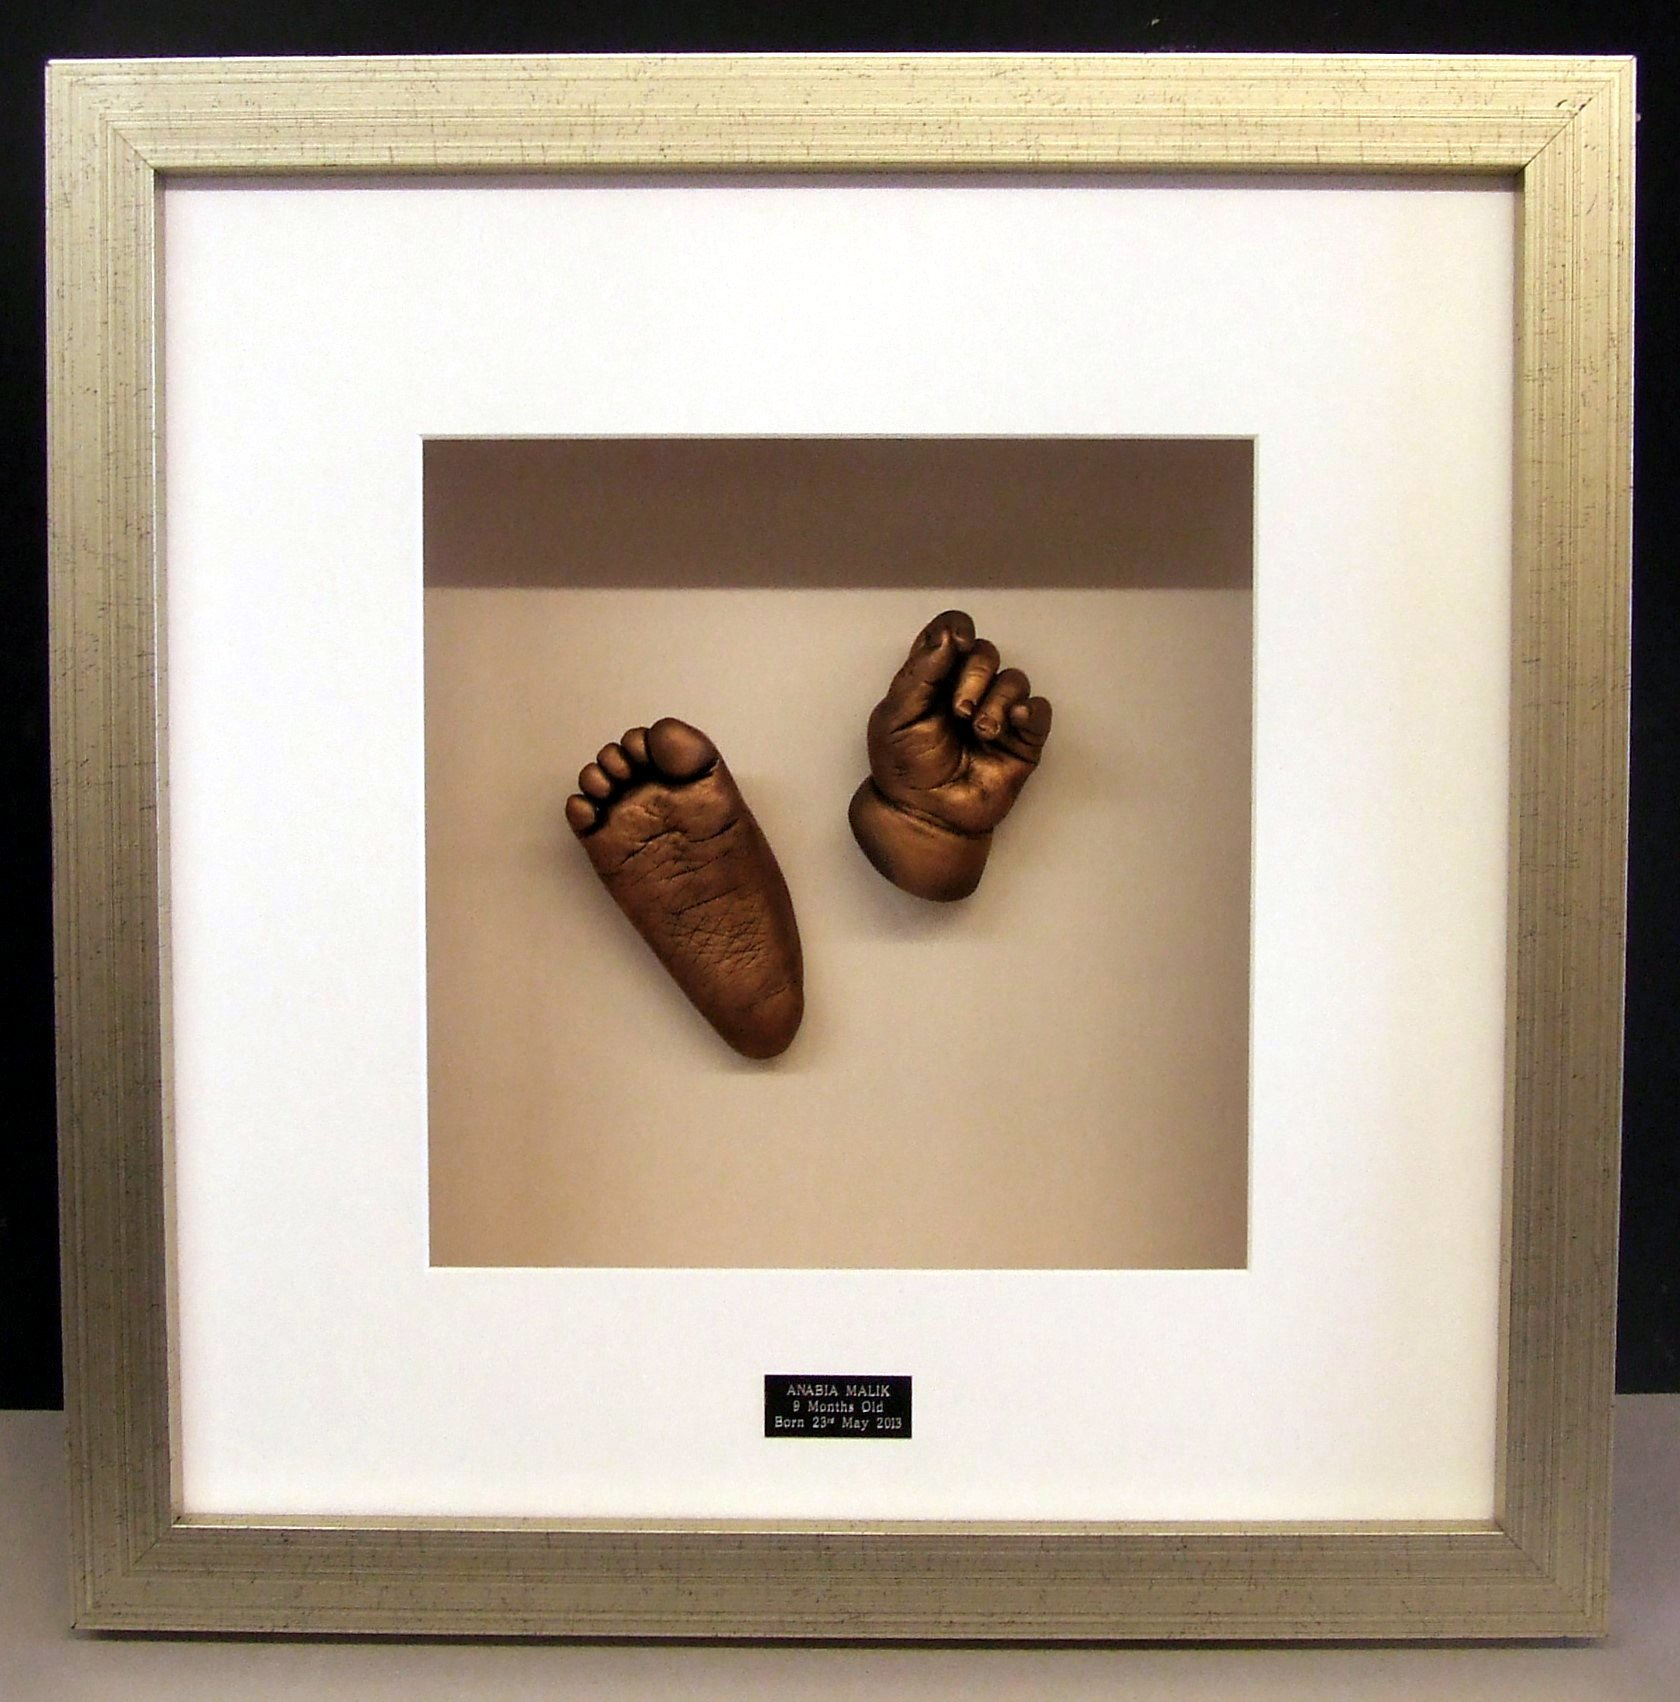 A frame of foot and palm